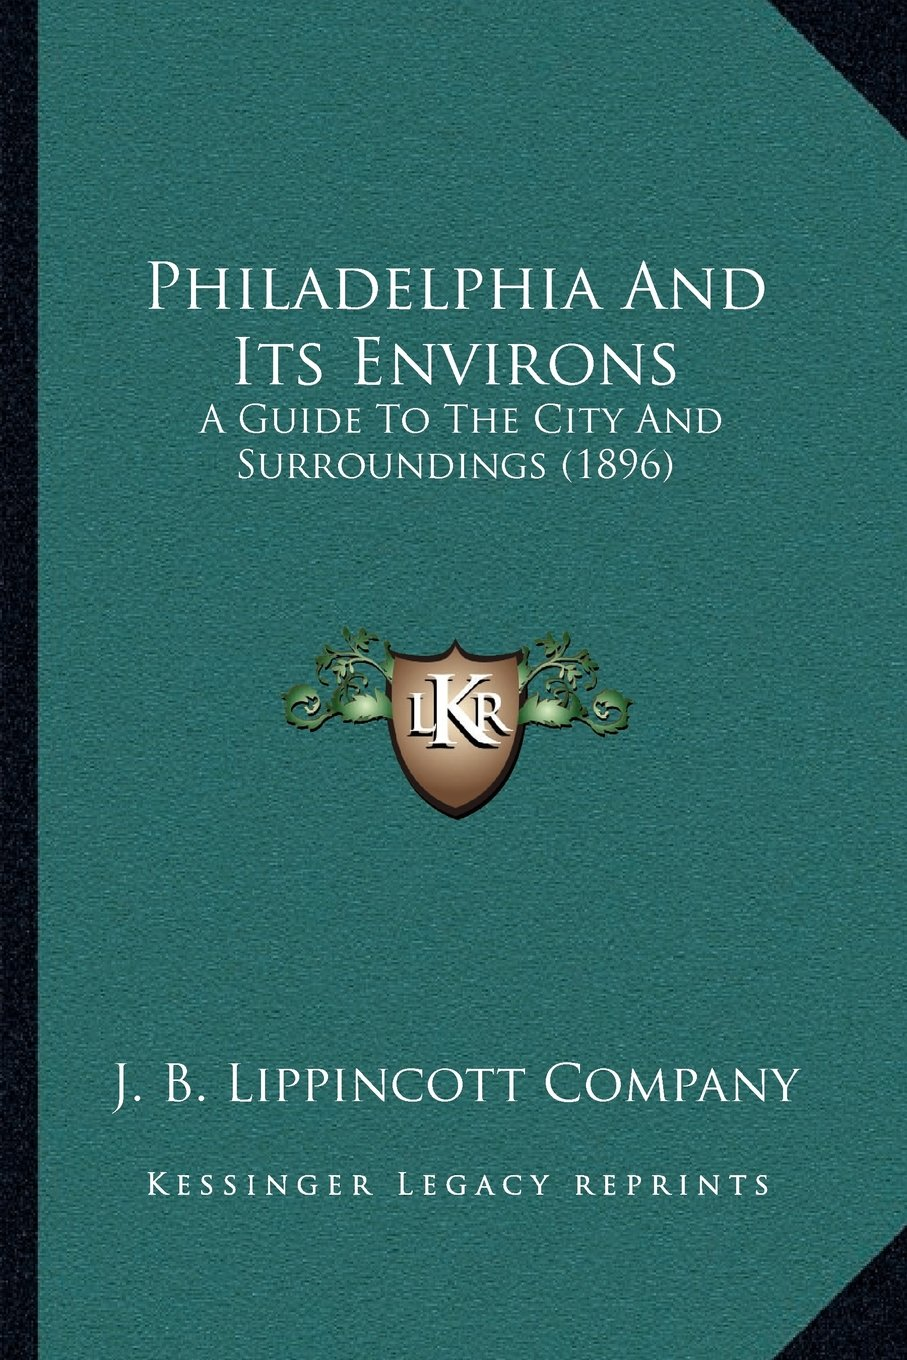 Download Philadelphia And Its Environs: A Guide To The City And Surroundings (1896) pdf